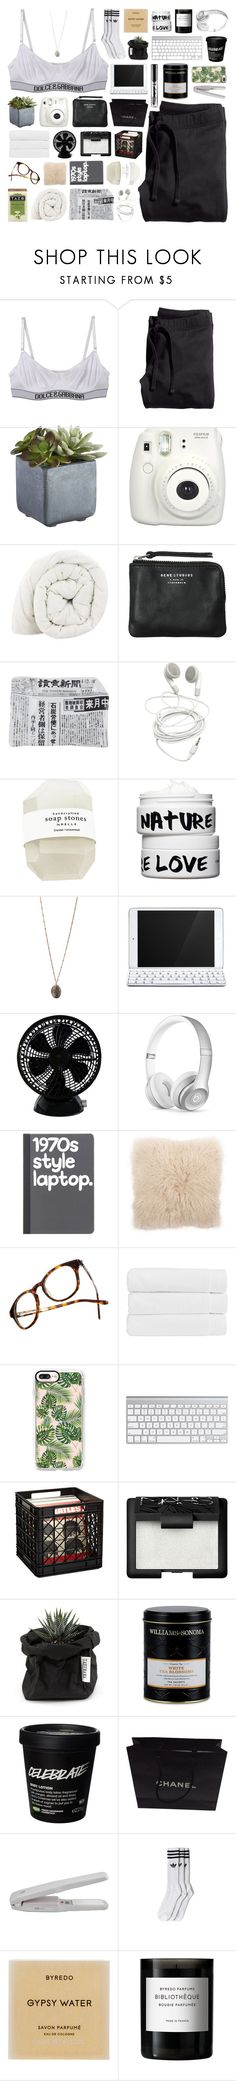 """I'm walking on a wire, trying to go higher"" by justonegirlwithdreams ❤ liked on Polyvore featuring Dolce&Gabbana, H&M, Crate and Barrel, Fujifilm, Acne Studios, Fornasetti, Nature Girl, Topshop, Logitech and Keystone"